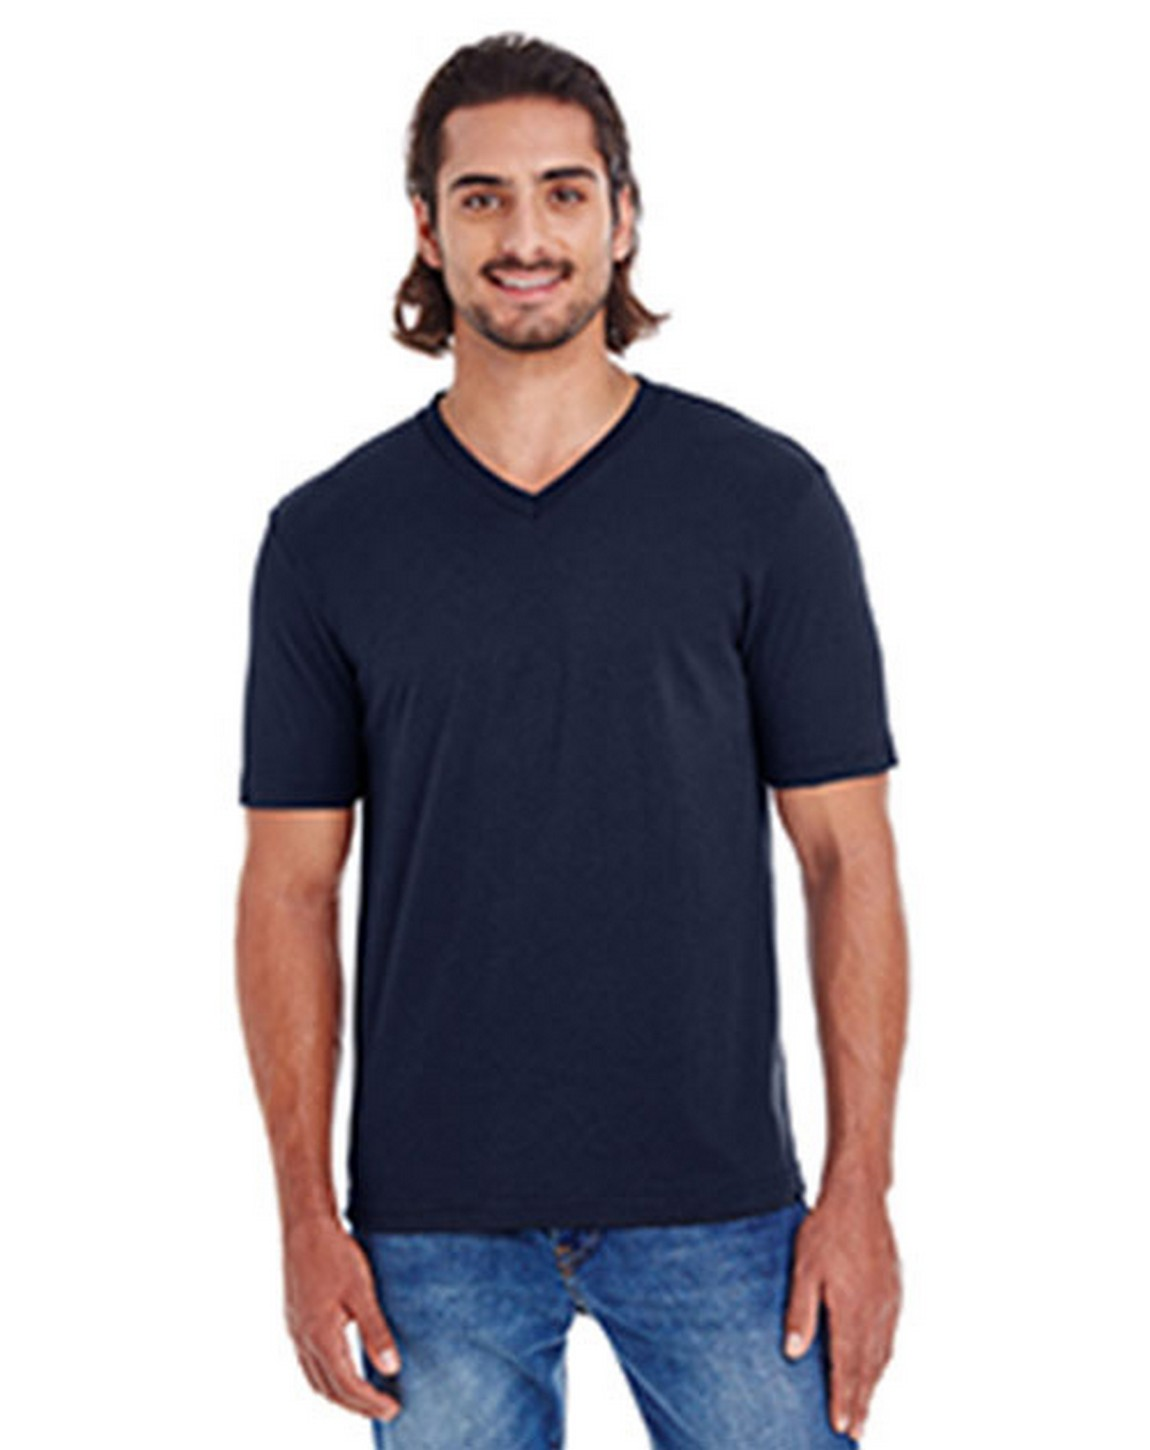 American Apparel 24321W Unisex Fine Jersey Short Sleeve Classic V-Neck T-Shirt